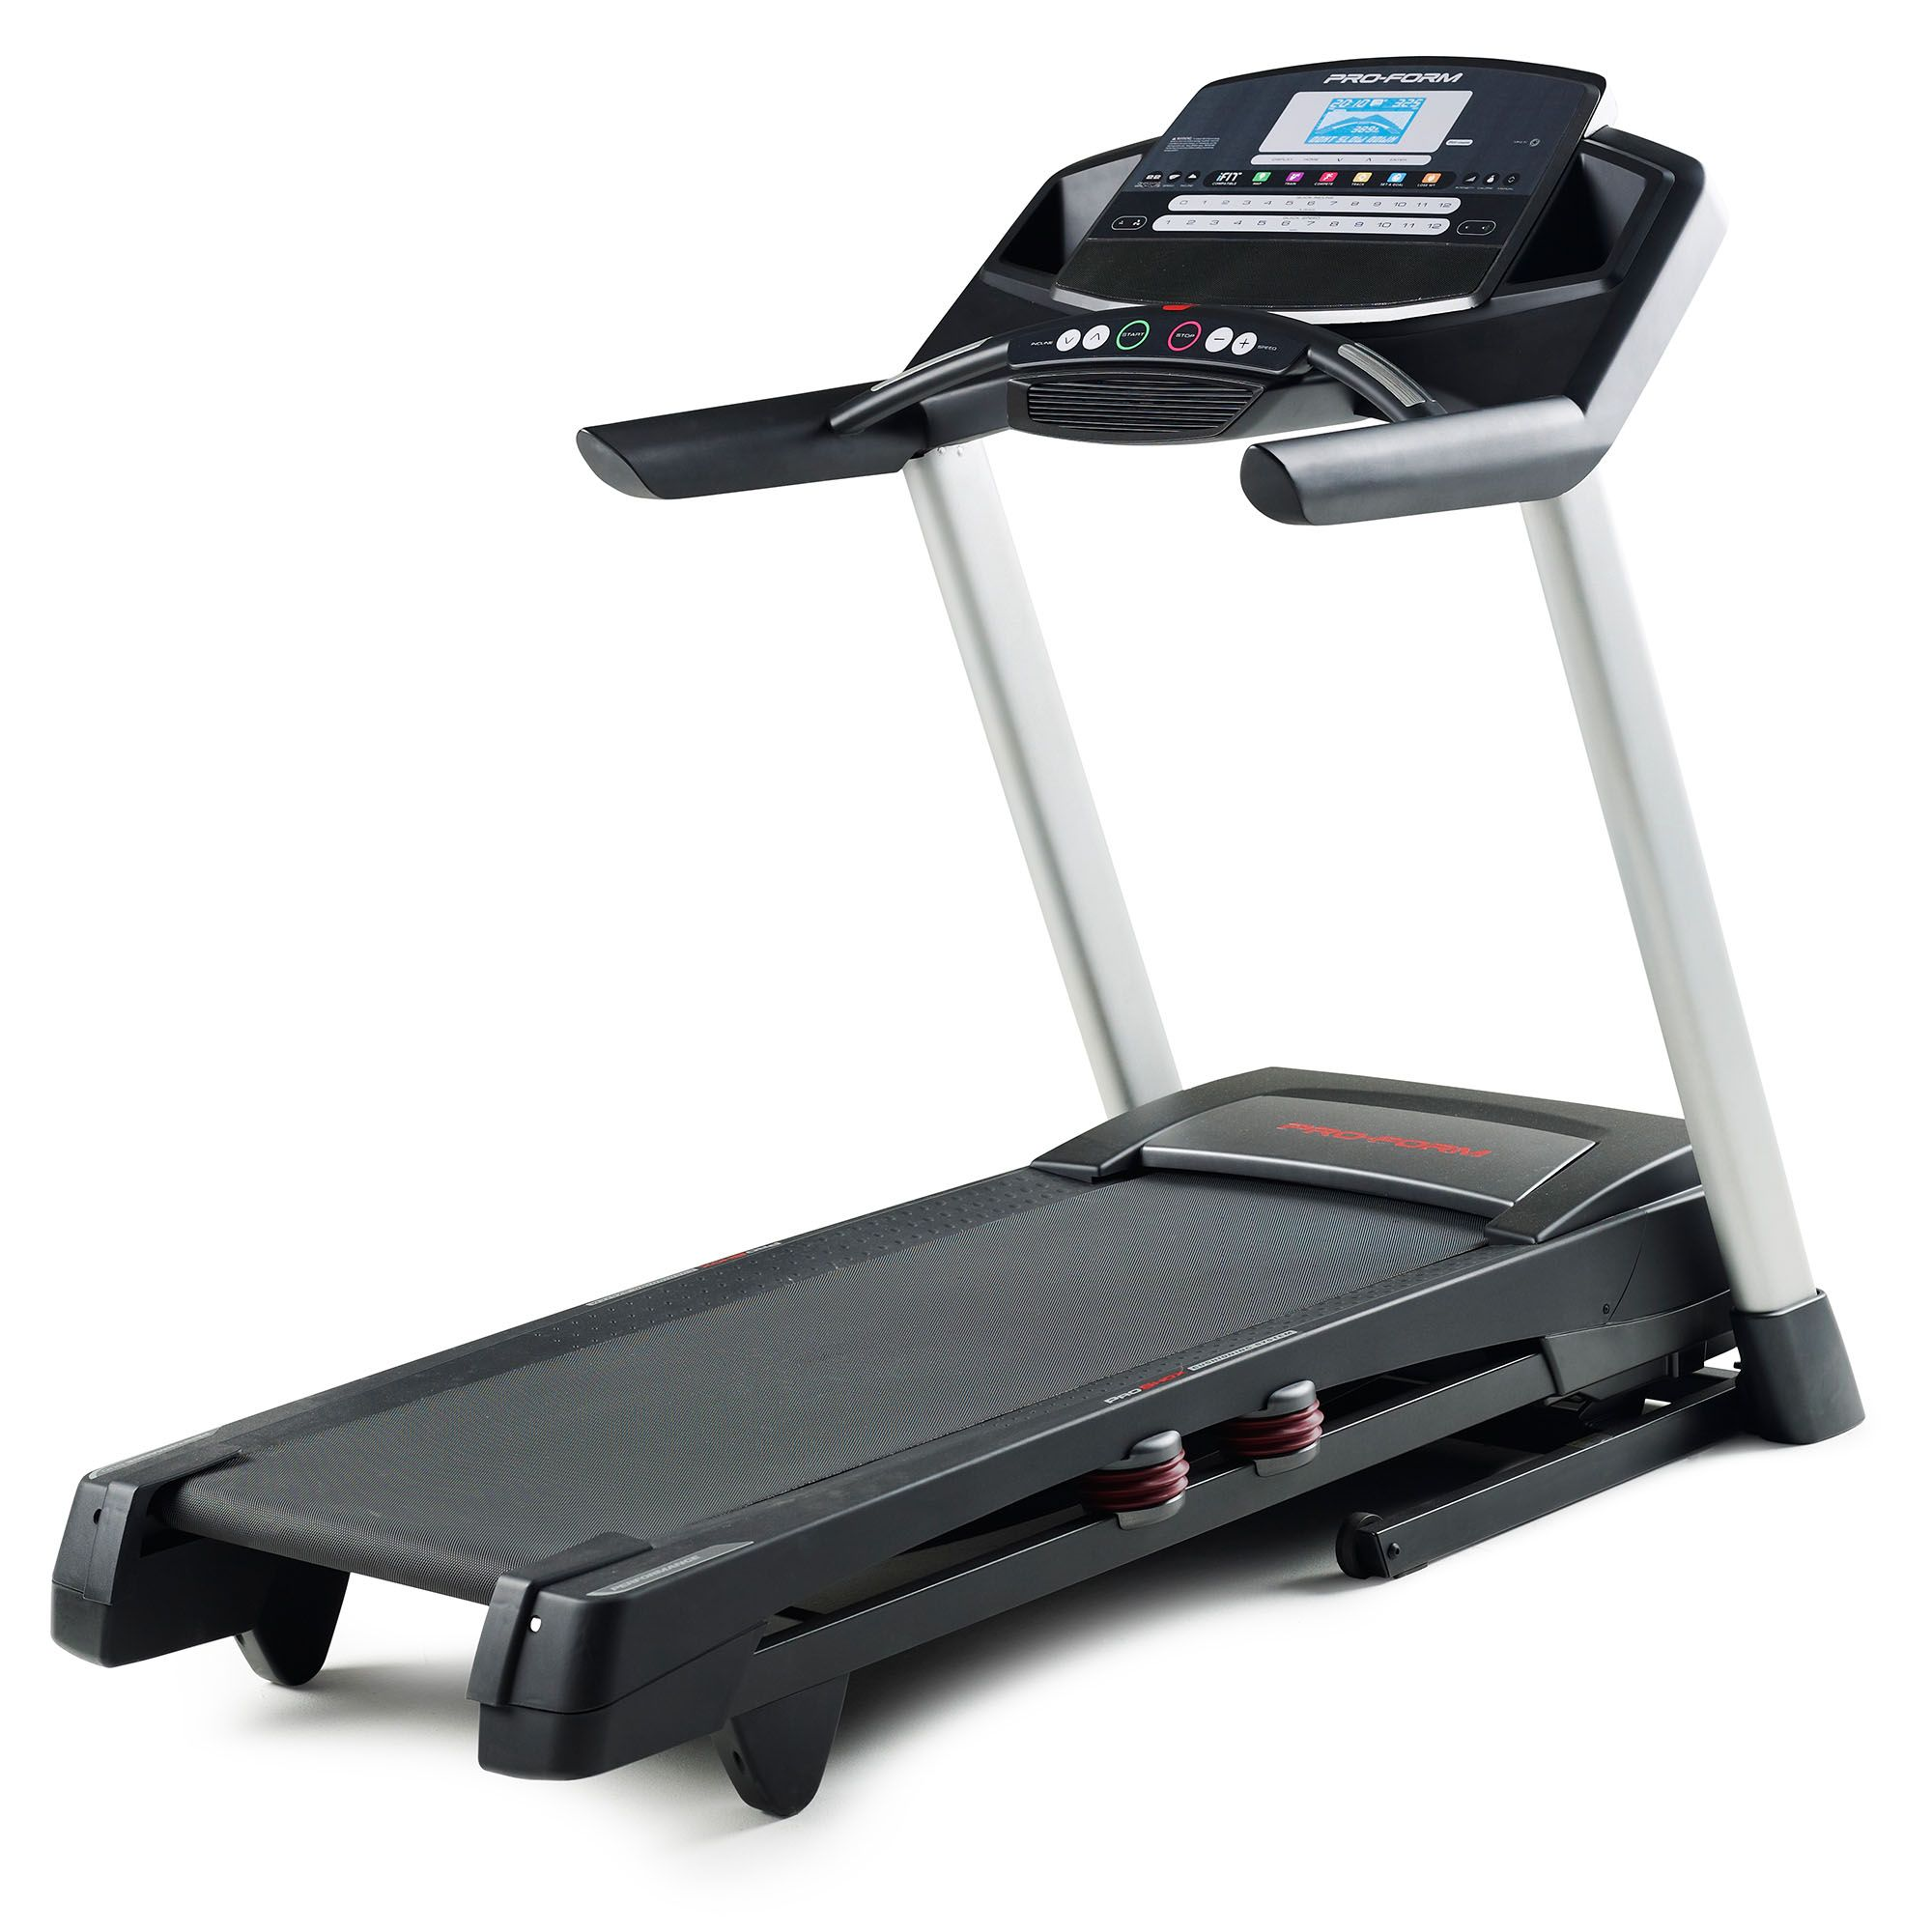 Max Fit Treadmill Price Of Electrical 60576924928 further Horizon Paragon Ii Hrc Cs Treadmill also Speedfit moreover Diy Electric Pottery Wheels also YnJvb2tzLXNob2VzLXdpZHRoLWNoYXJ0. on treadmill motor